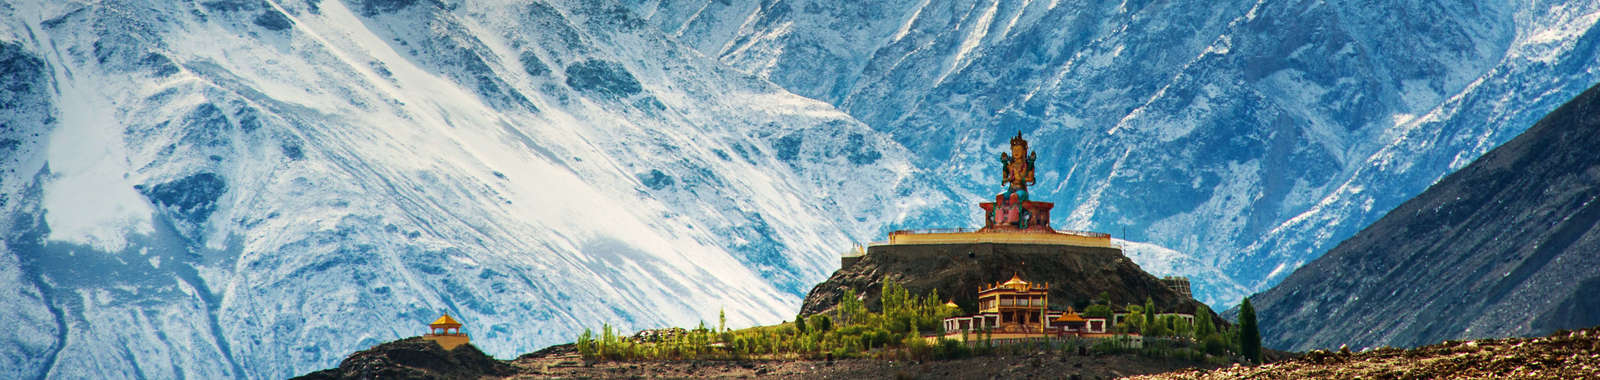 Mountains and monasteries on a tailor-made holiday to Ladakh